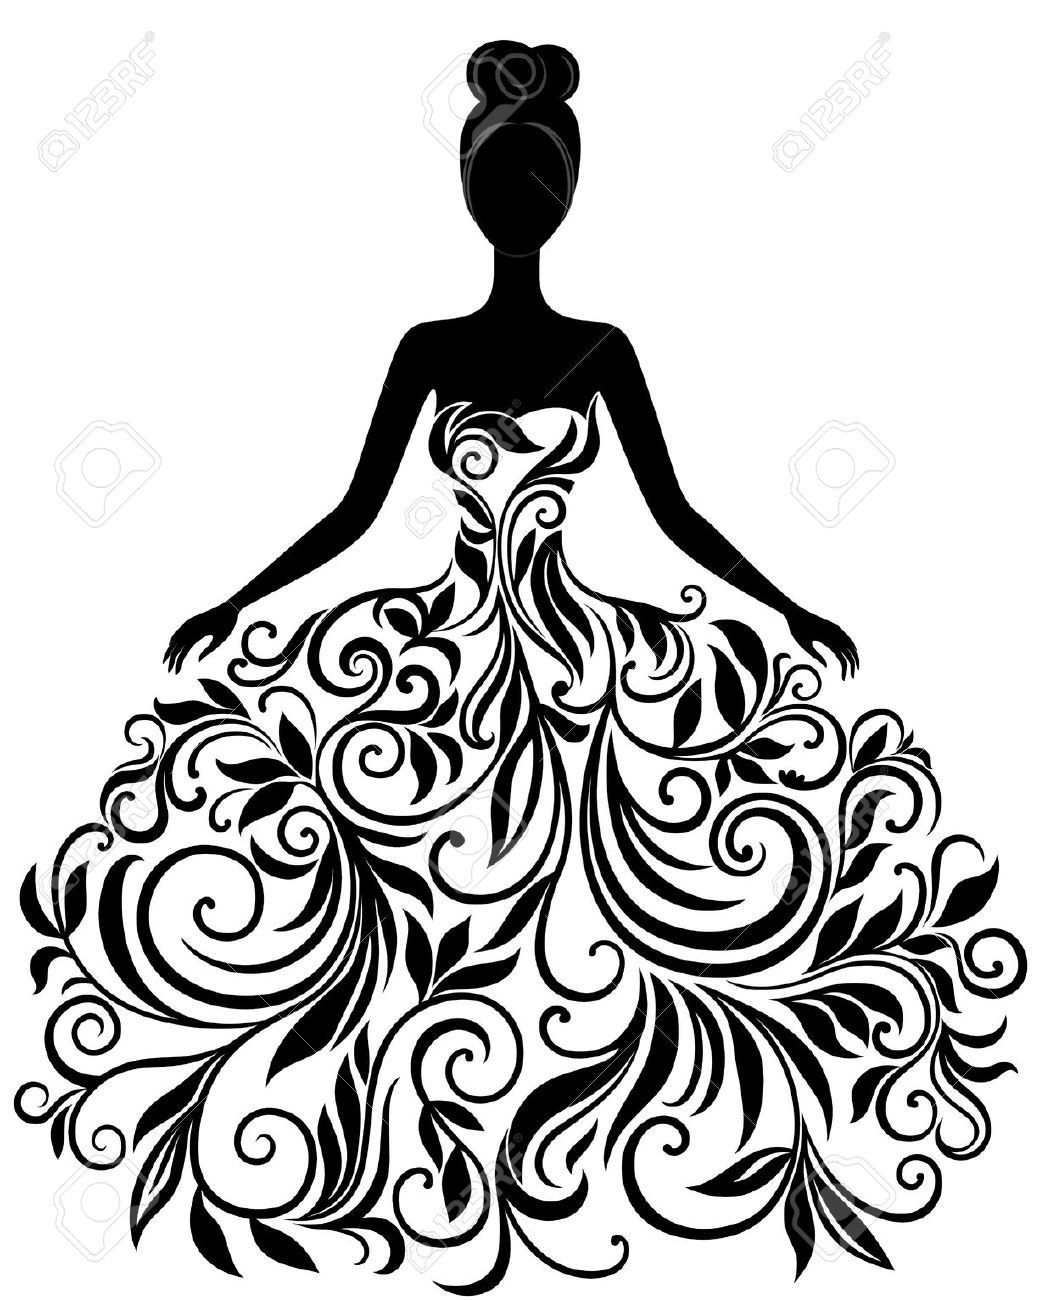 Free Wedding Silhouettes | silhouette of young woman in dress ...